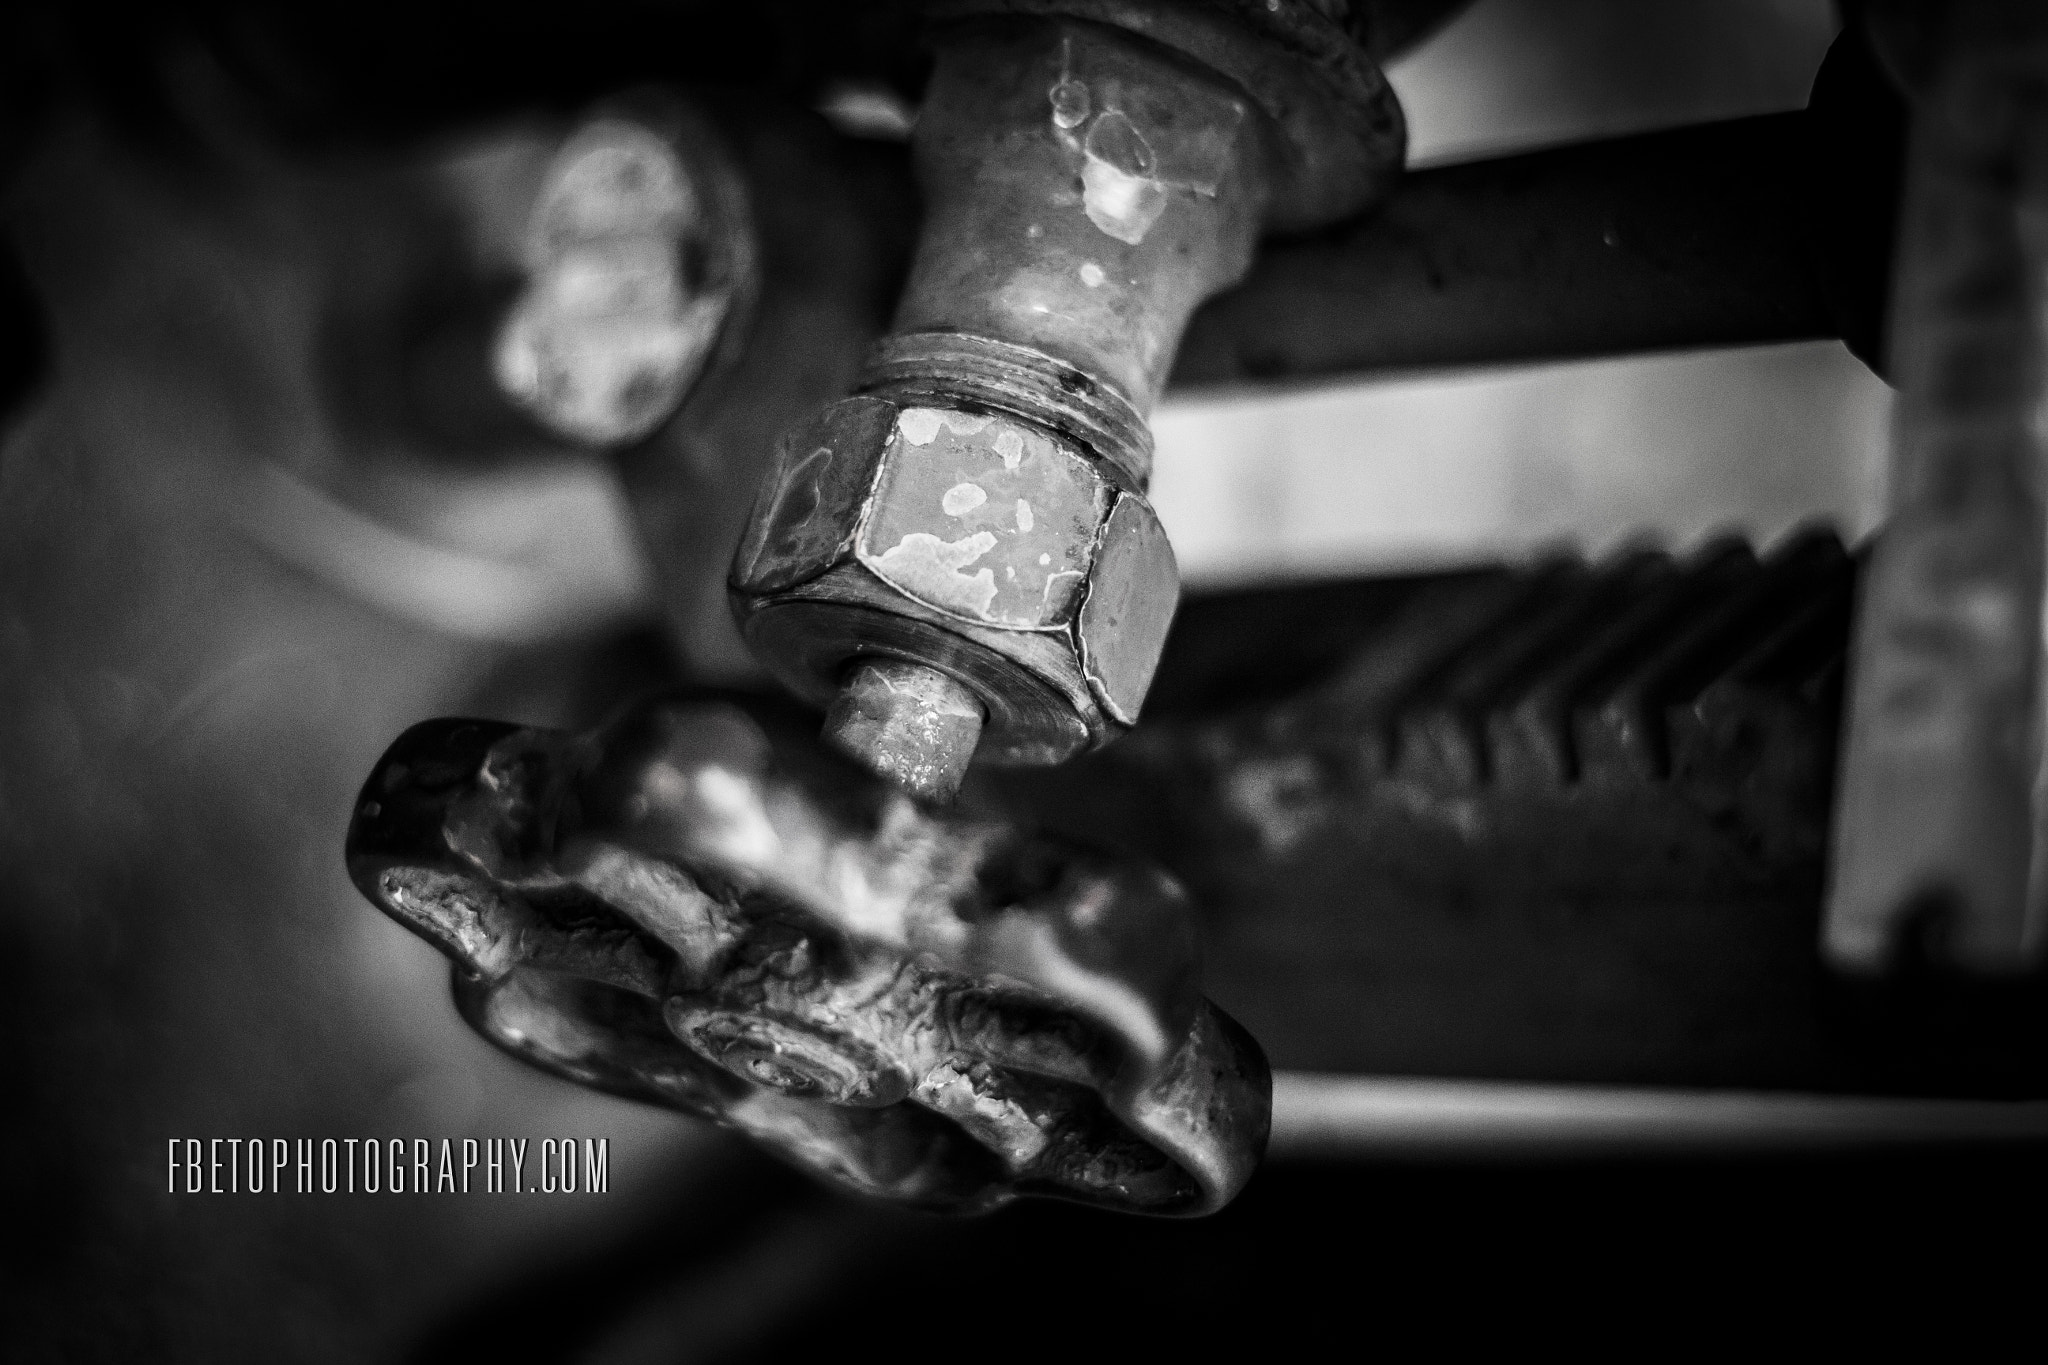 Photograph Valve by Fernando De Oliveira on 500px